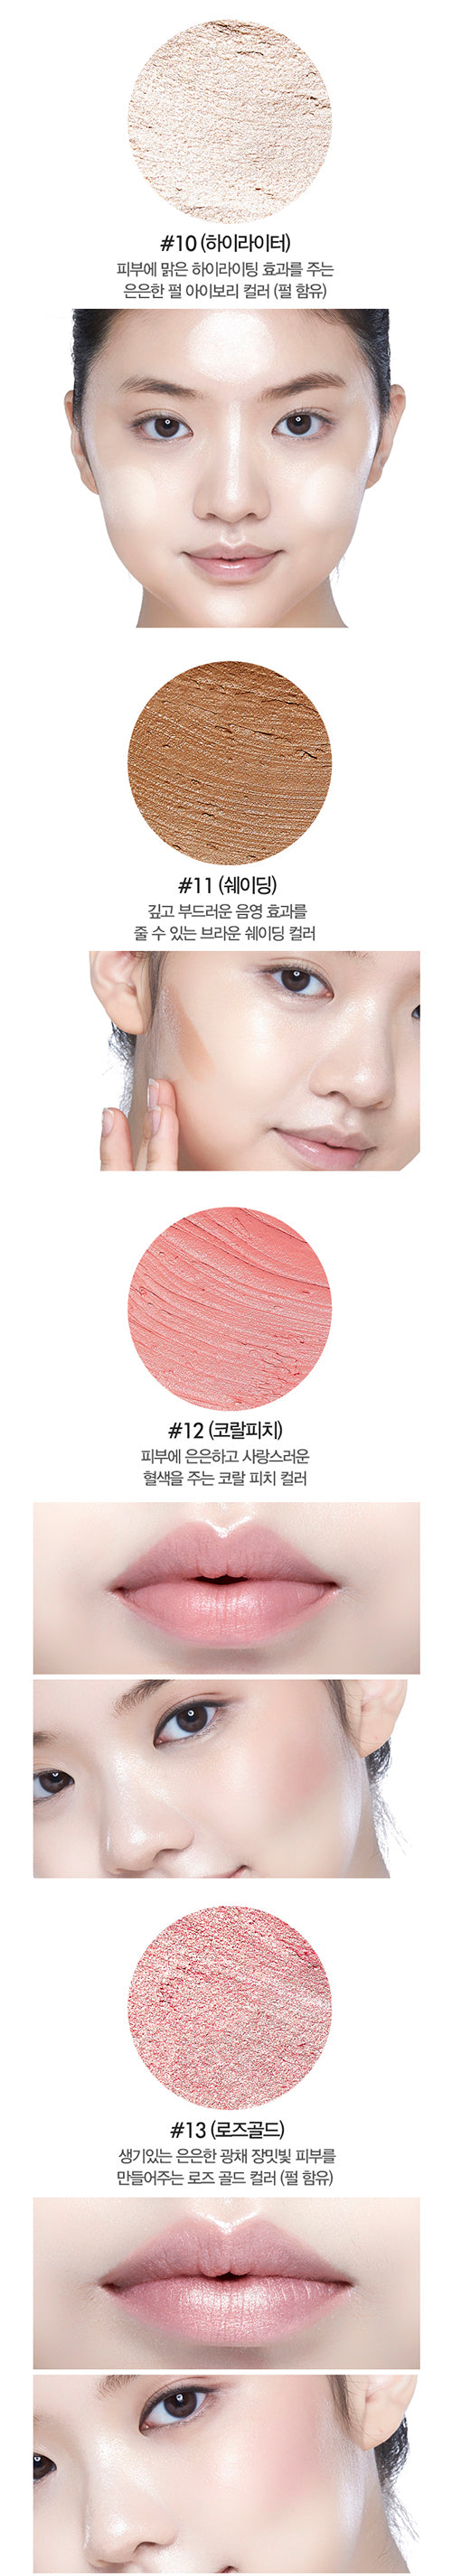 Etude House Play 101 Stick Blusher #12 Coral